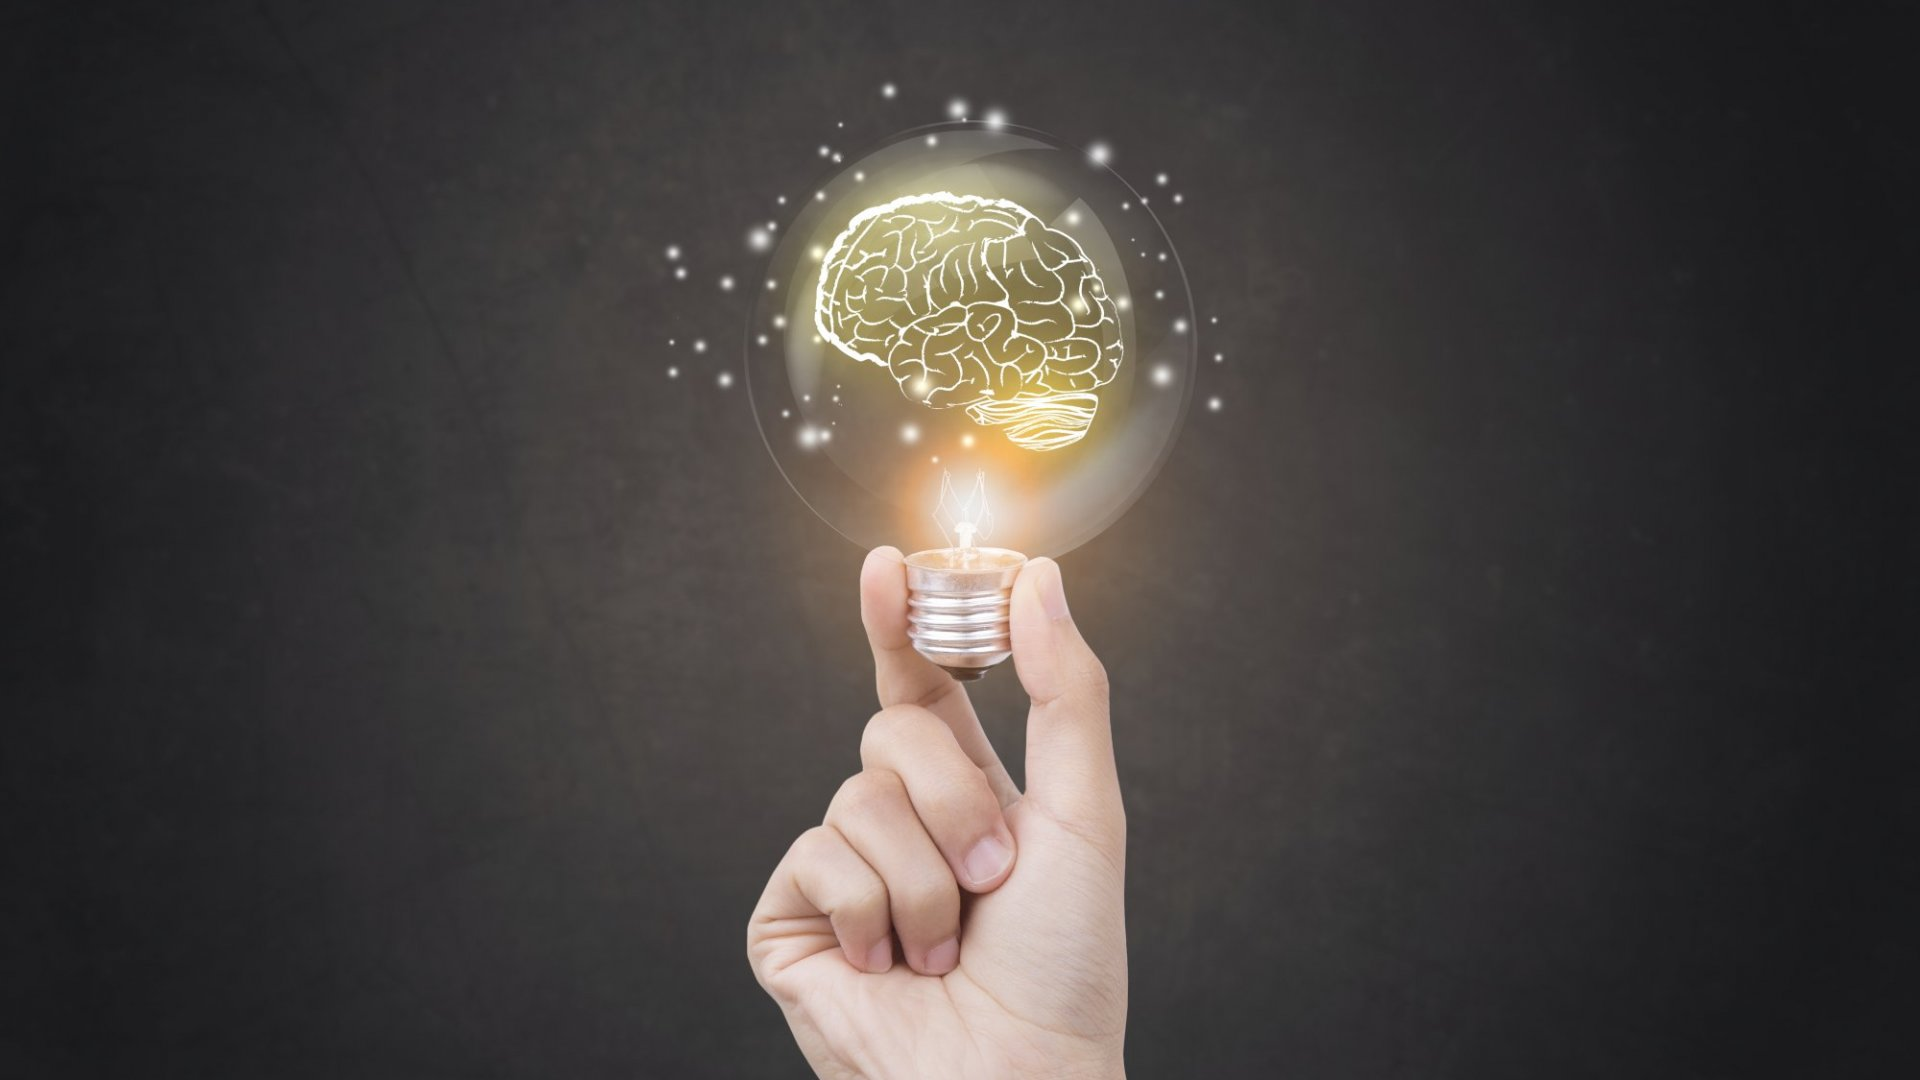 5 Reasons Entrepreneurs Need to Think Creatively